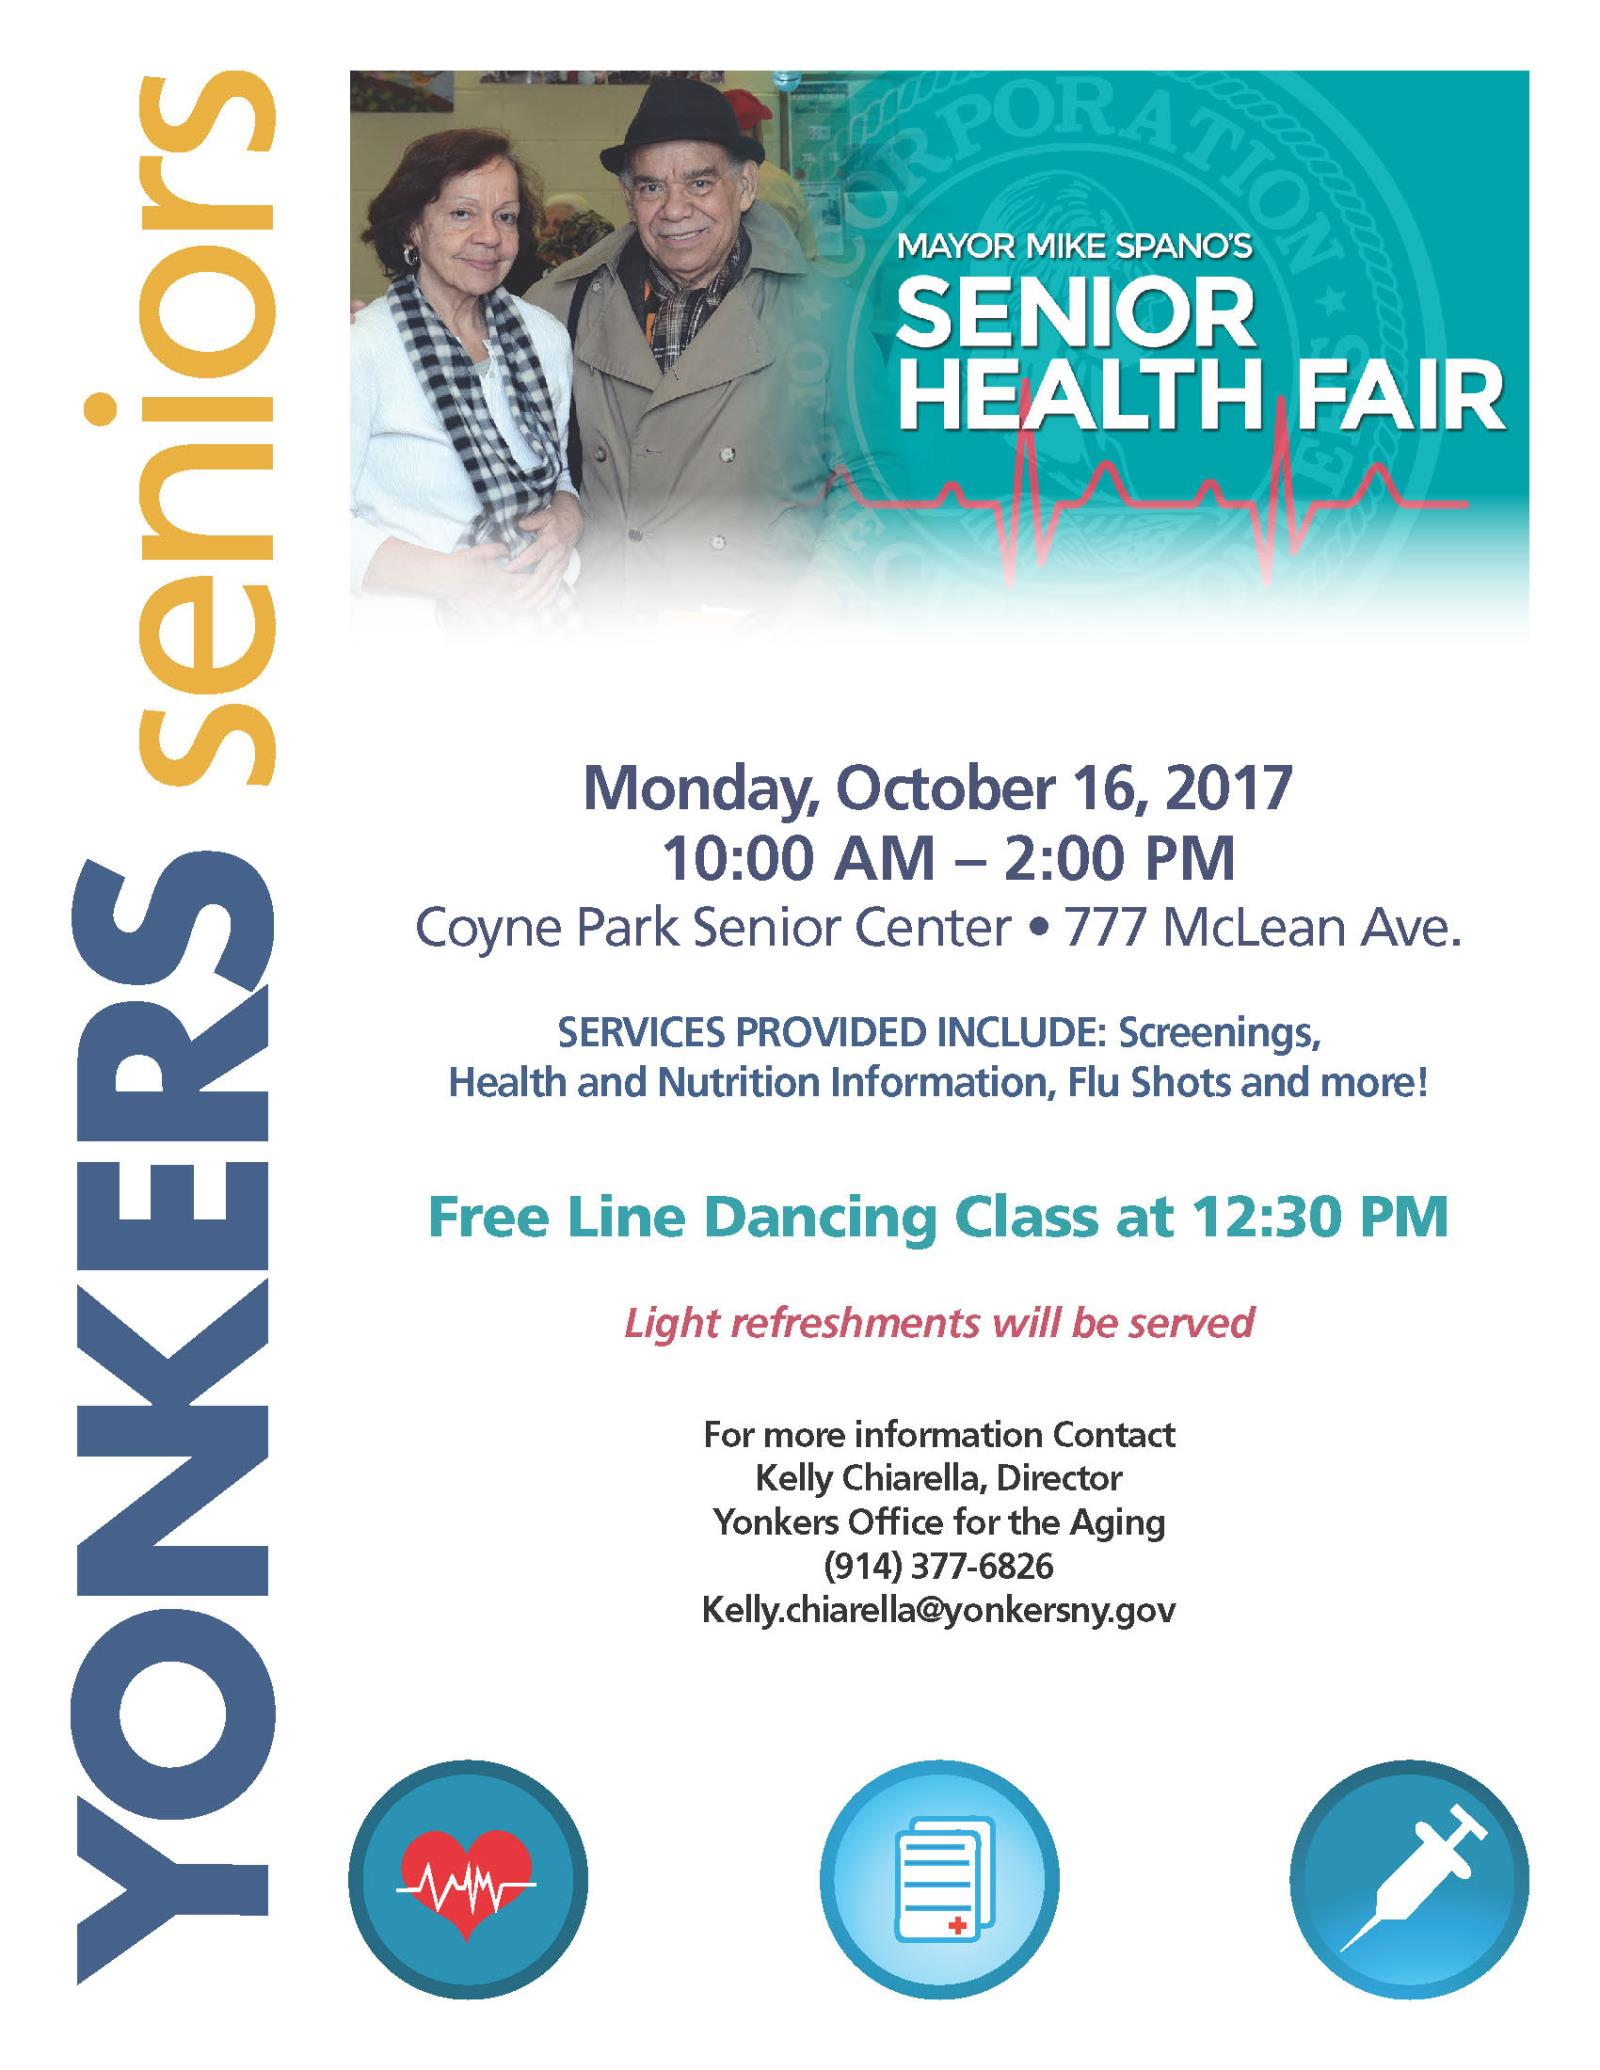 Mayor Mike Spano Hosts Annual Senior Health Fair